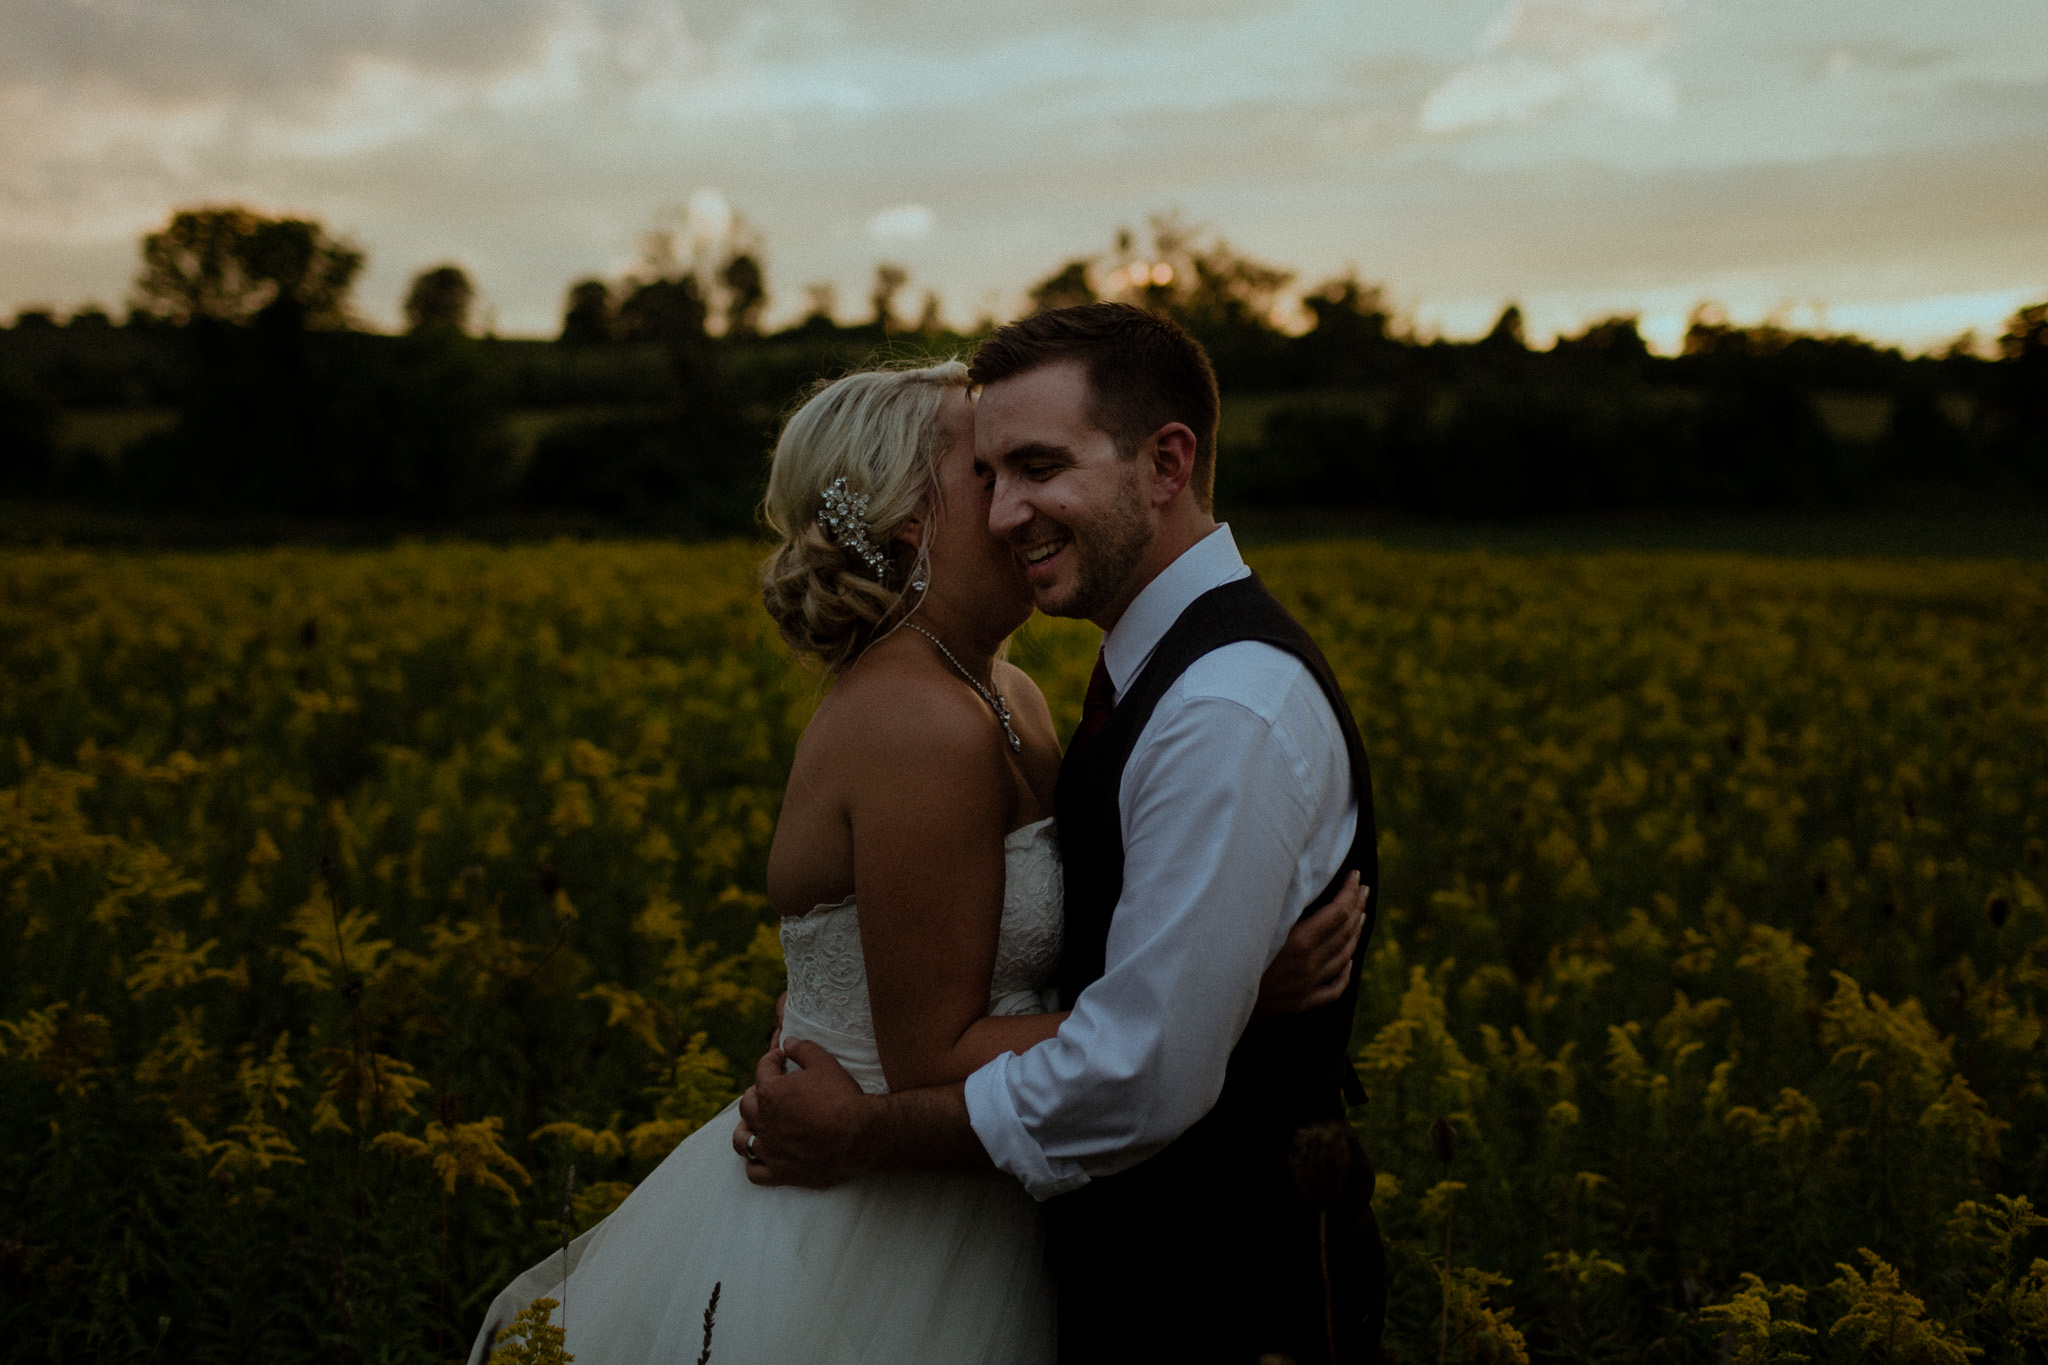 sunset portraits century barn wedding venue toronto cavan peterborough lakefield photographer